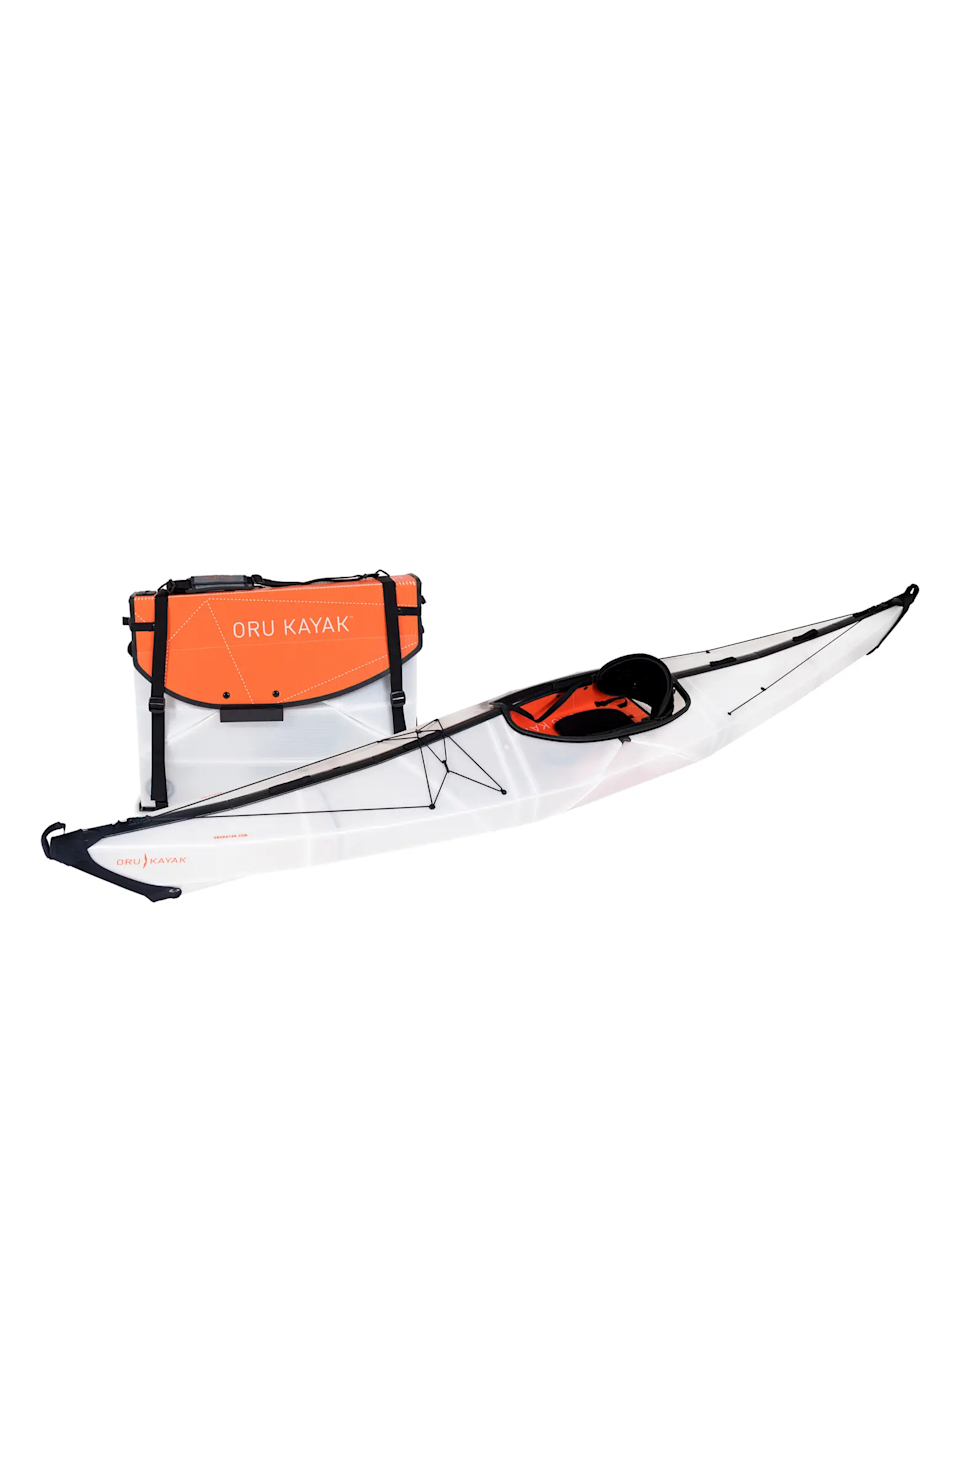 "<br><br><strong>Oru Kayaks</strong> ST 12' Foldable Kayak, $, available at <a href=""https://go.skimresources.com/?id=30283X879131&url=https%3A%2F%2Fwww.nordstrom.com%2Fs%2Foru-kayak-bay-st-12-foldable-kayak%2F5773506%3Forigin%3Dcategory-personalizedsort%26breadcrumb%3DHome%252FHoliday%2520Gifts%252FAll%2520Gifts%26color%3Dwhite"" rel=""nofollow noopener"" target=""_blank"" data-ylk=""slk:Nordstrom"" class=""link rapid-noclick-resp"">Nordstrom</a>"